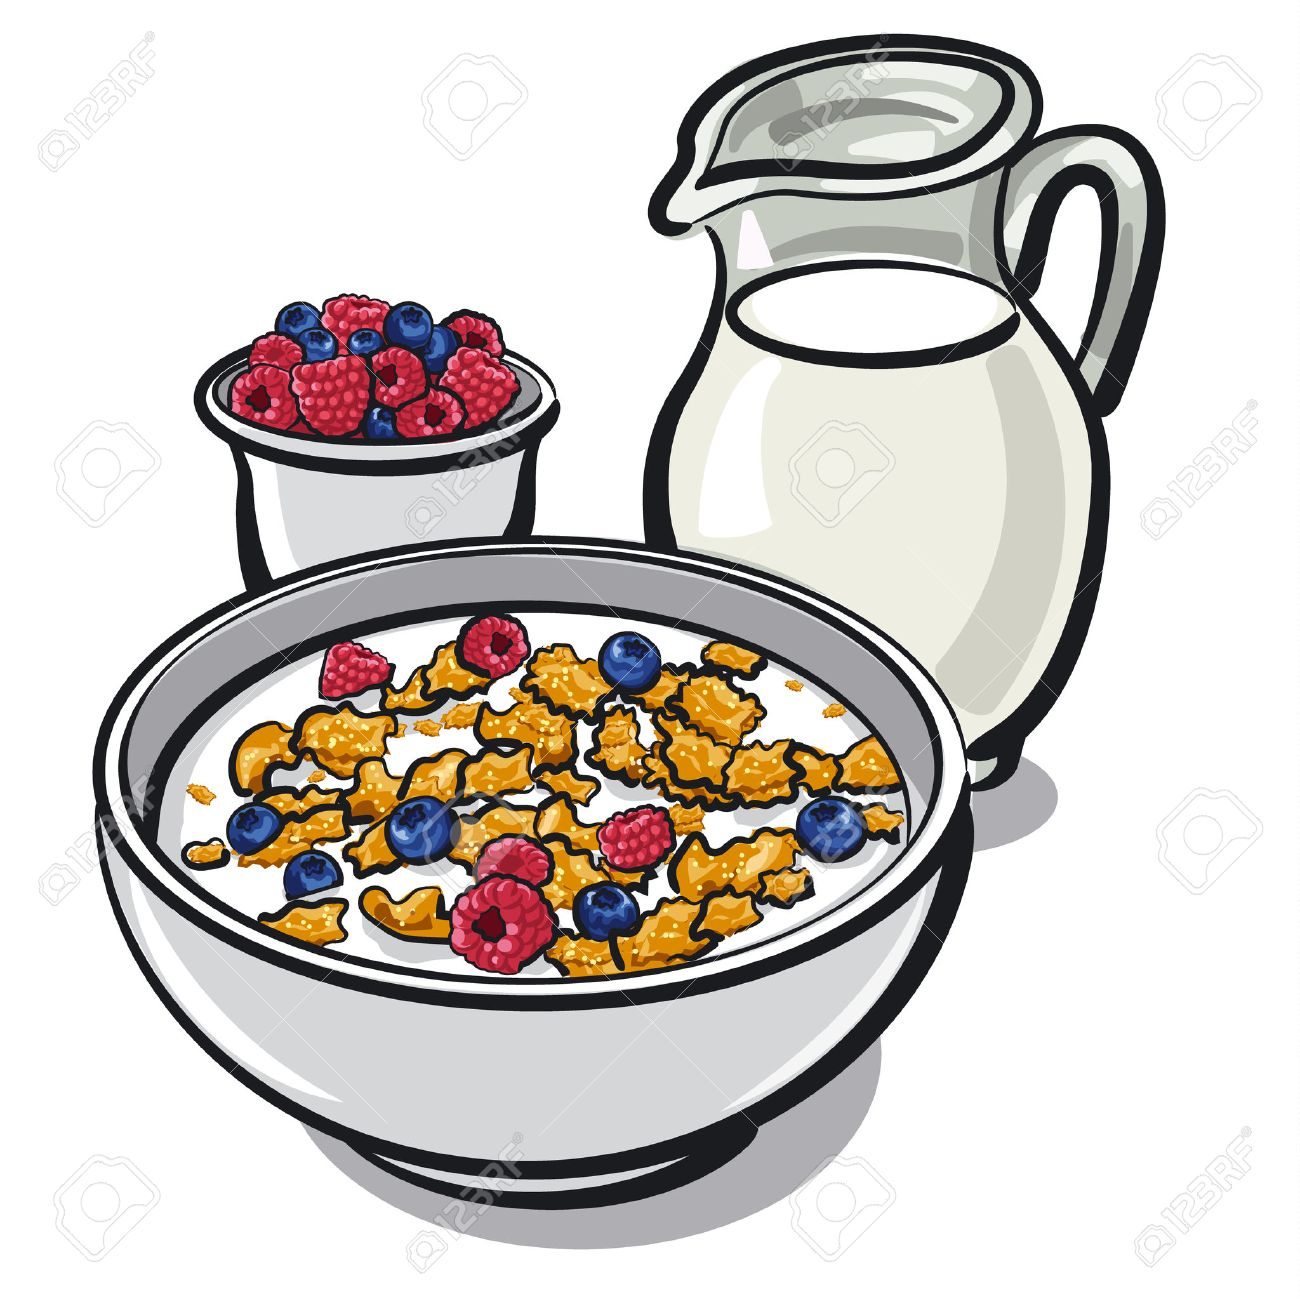 1300x1300 887 Oatmeal Breakfast Cliparts, Stock Vector And Royalty Free